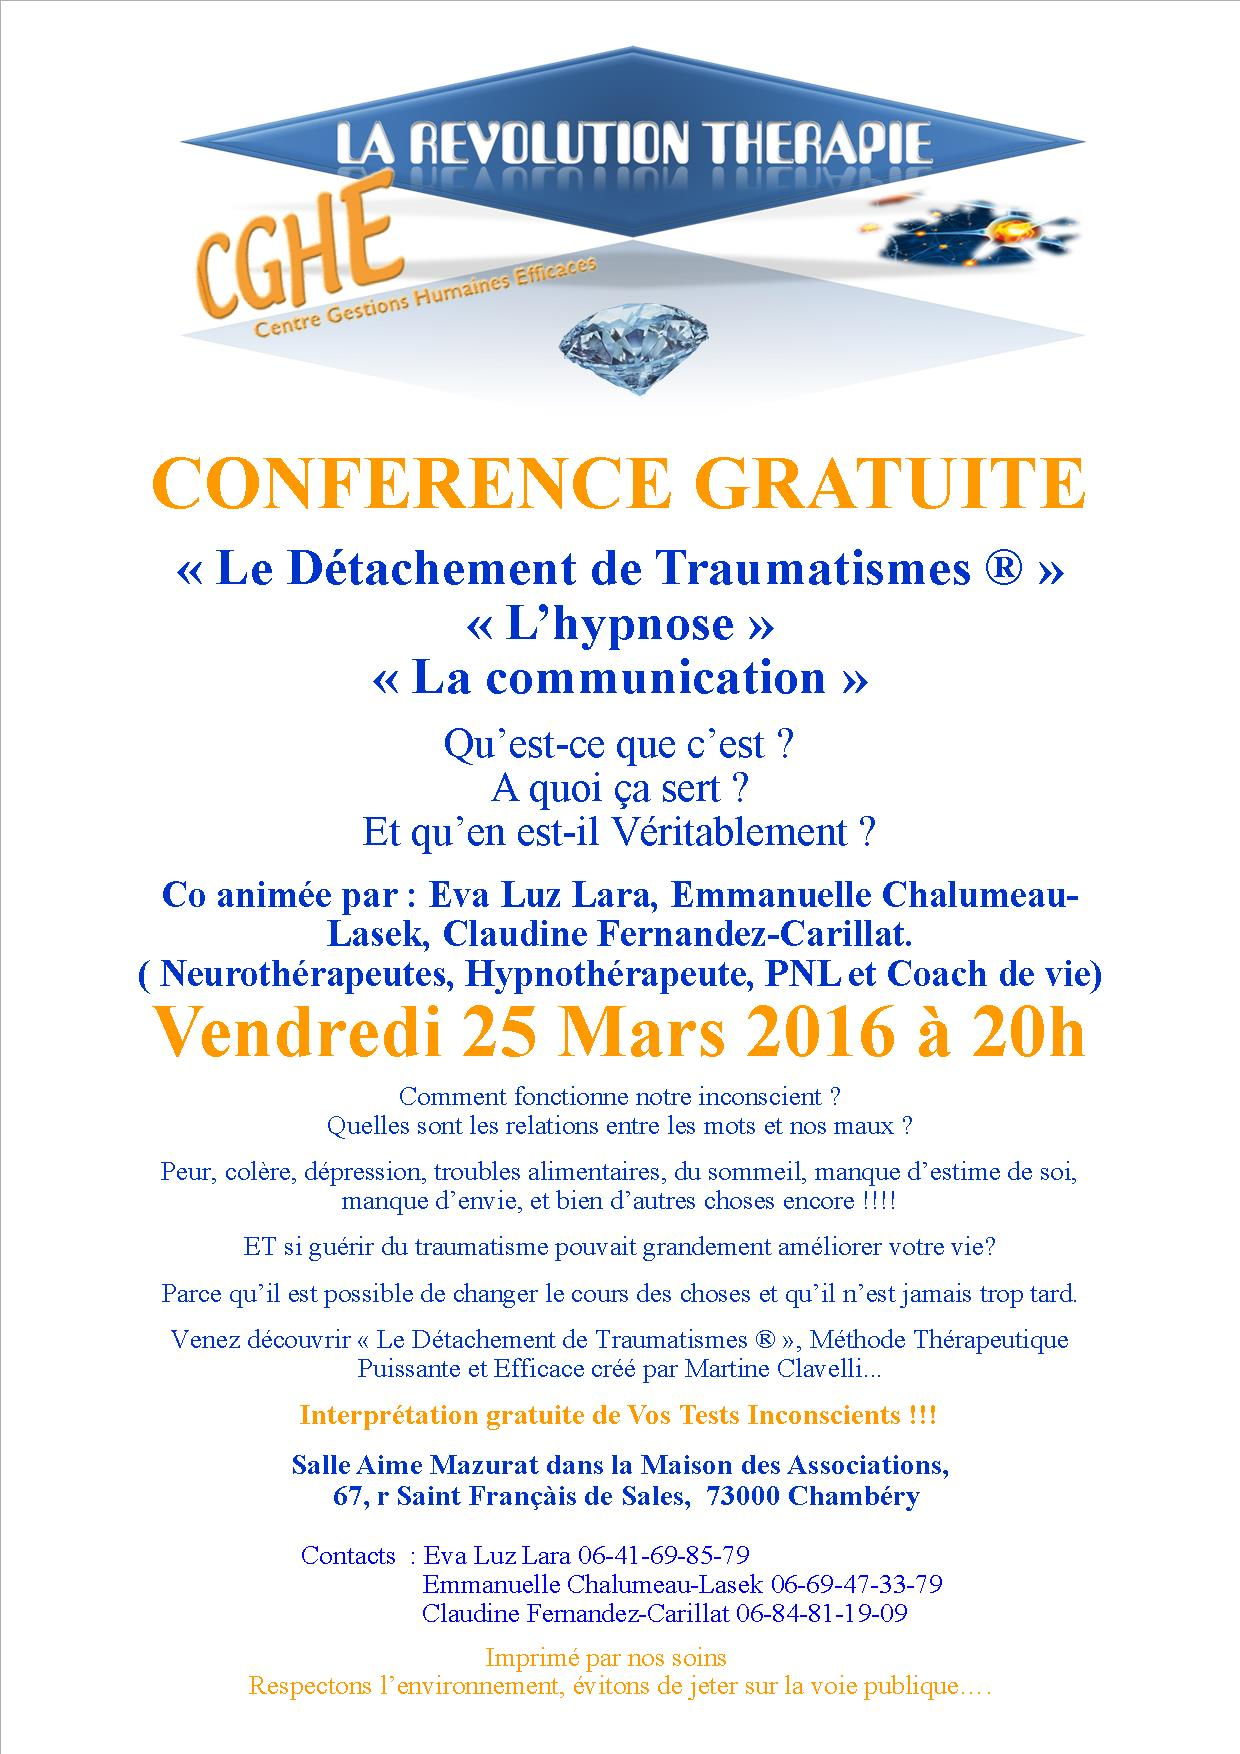 CONFERENCE Maison des Associations Chambery